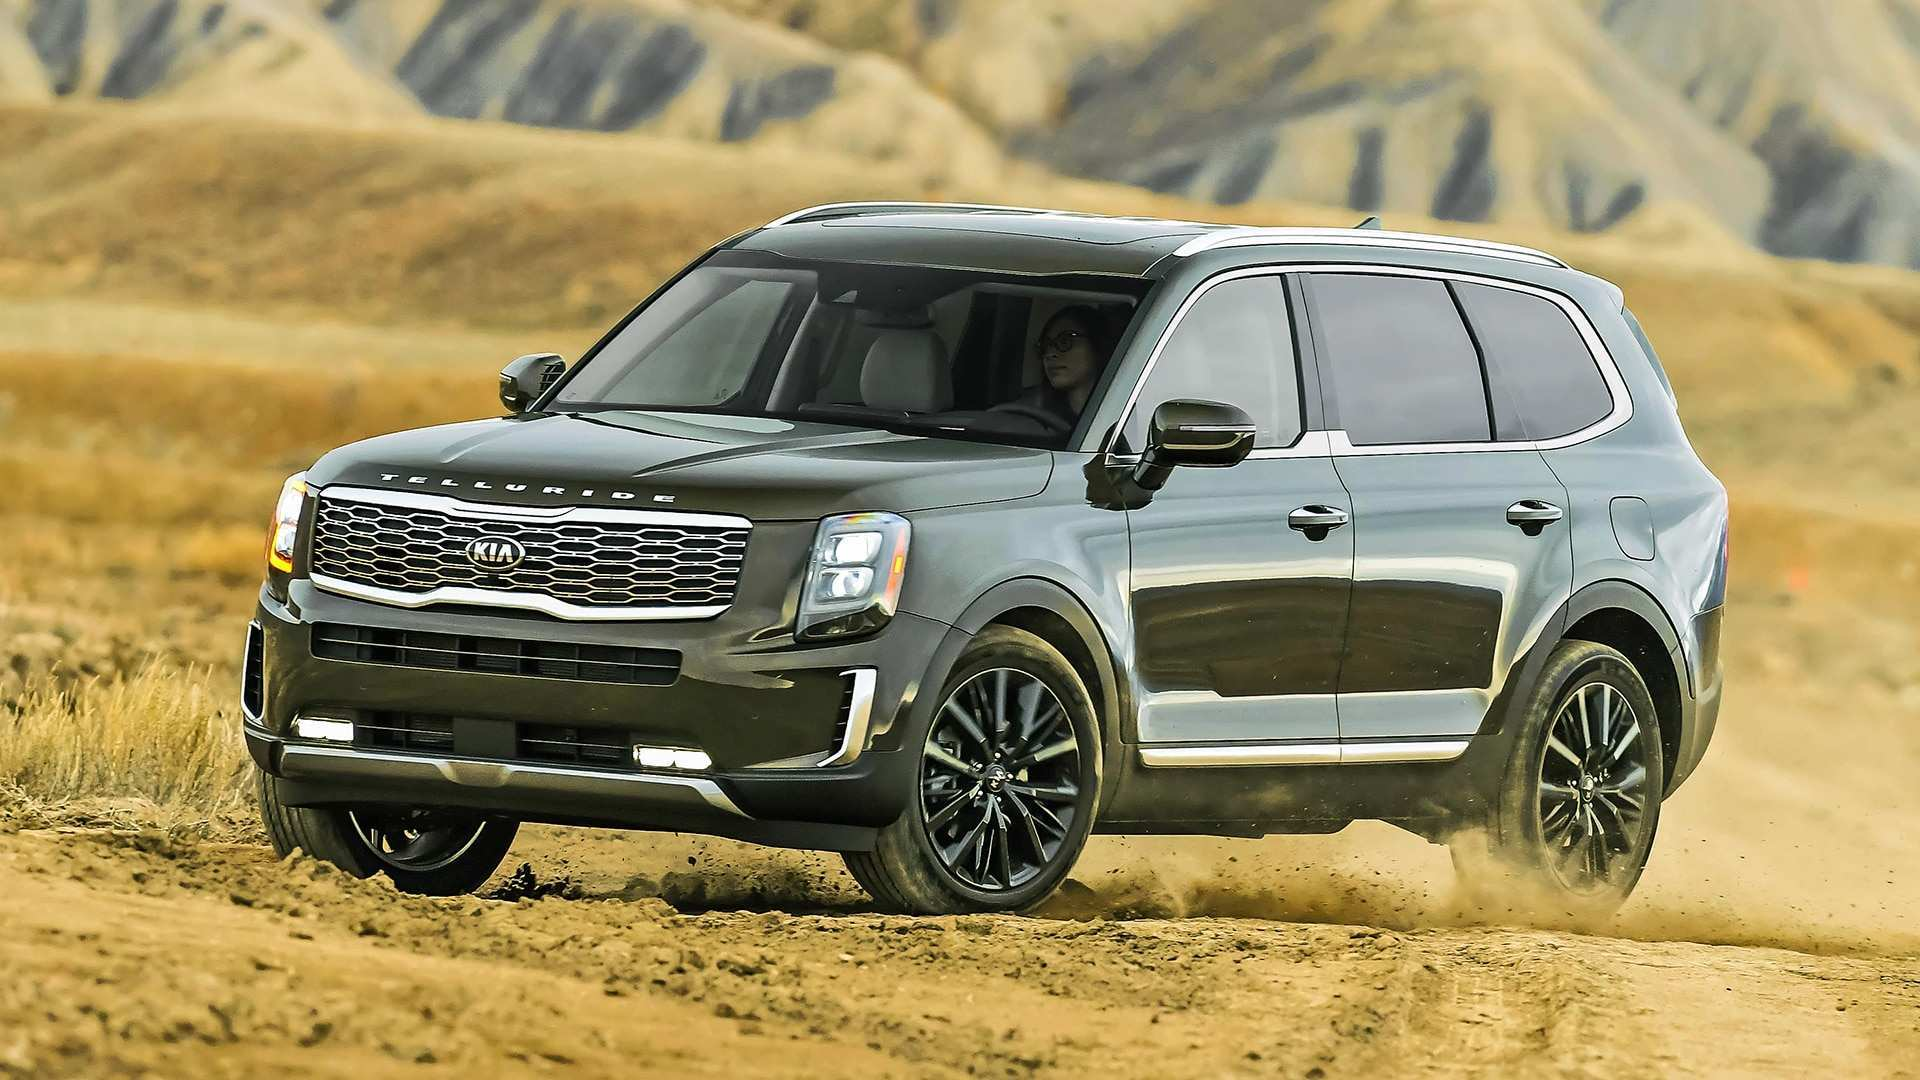 44 All New Telluride Kia 2019 Price And Review